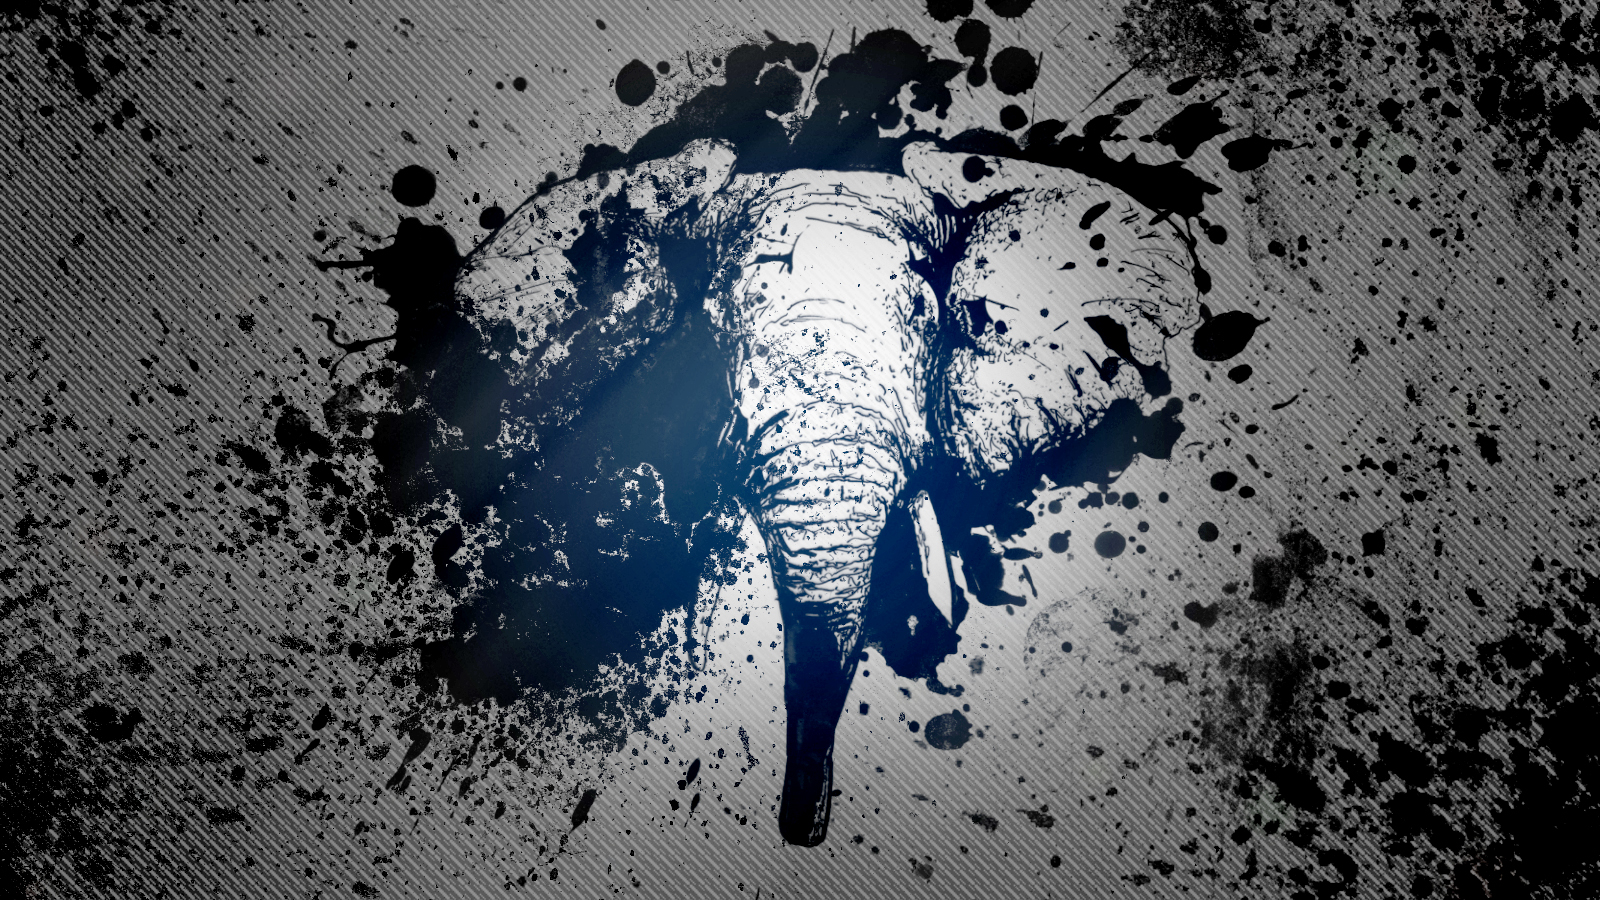 Inked Elephant Wallpaper by ~DavesArtwork on deviantART: findwallpaper.info/elephant+wallpaper/page/7